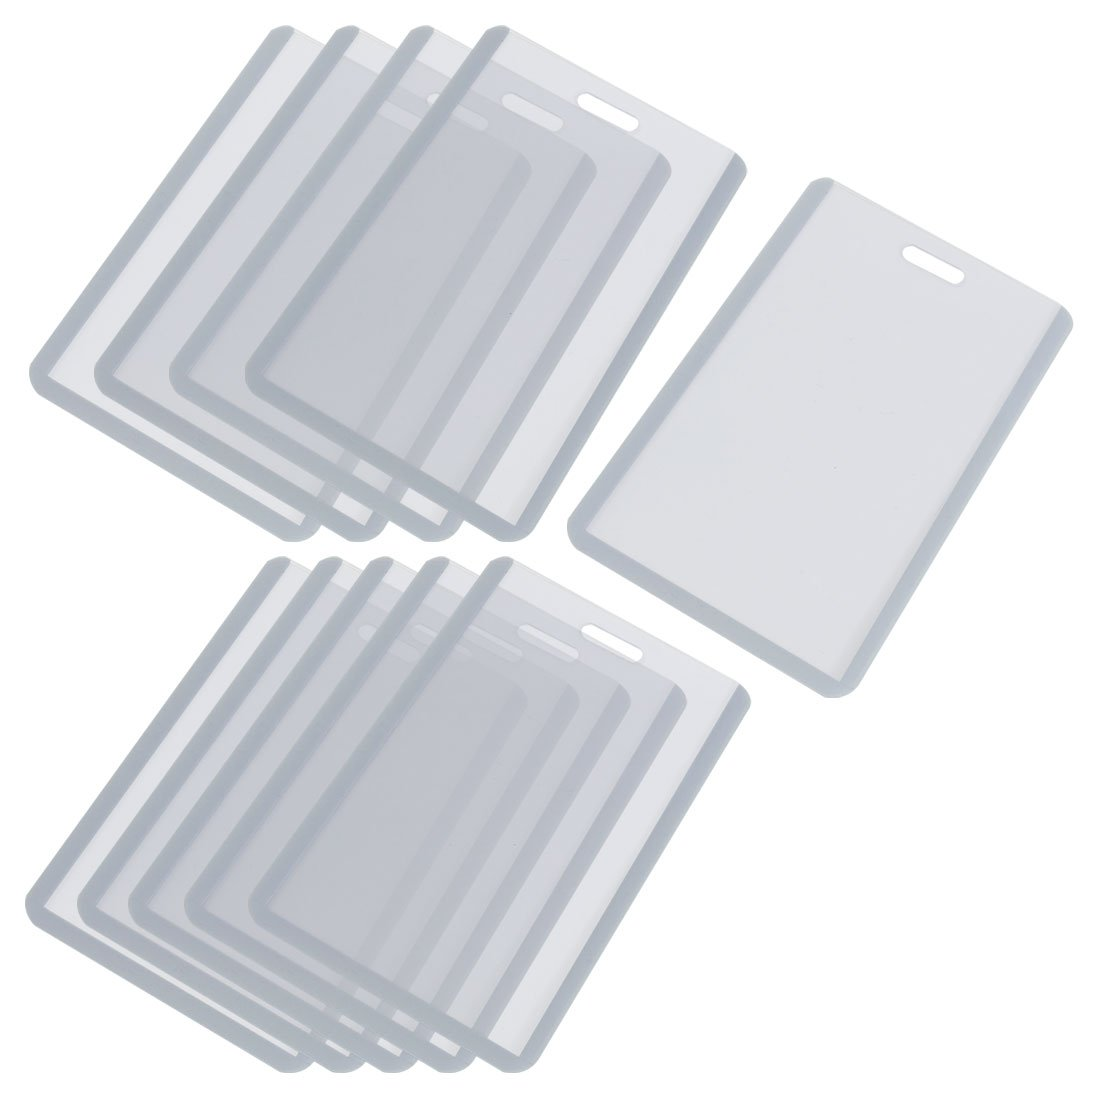 SOSW Vertical Business ID Badge Card Holder, 10 Pcs, Gray Clear-in ...